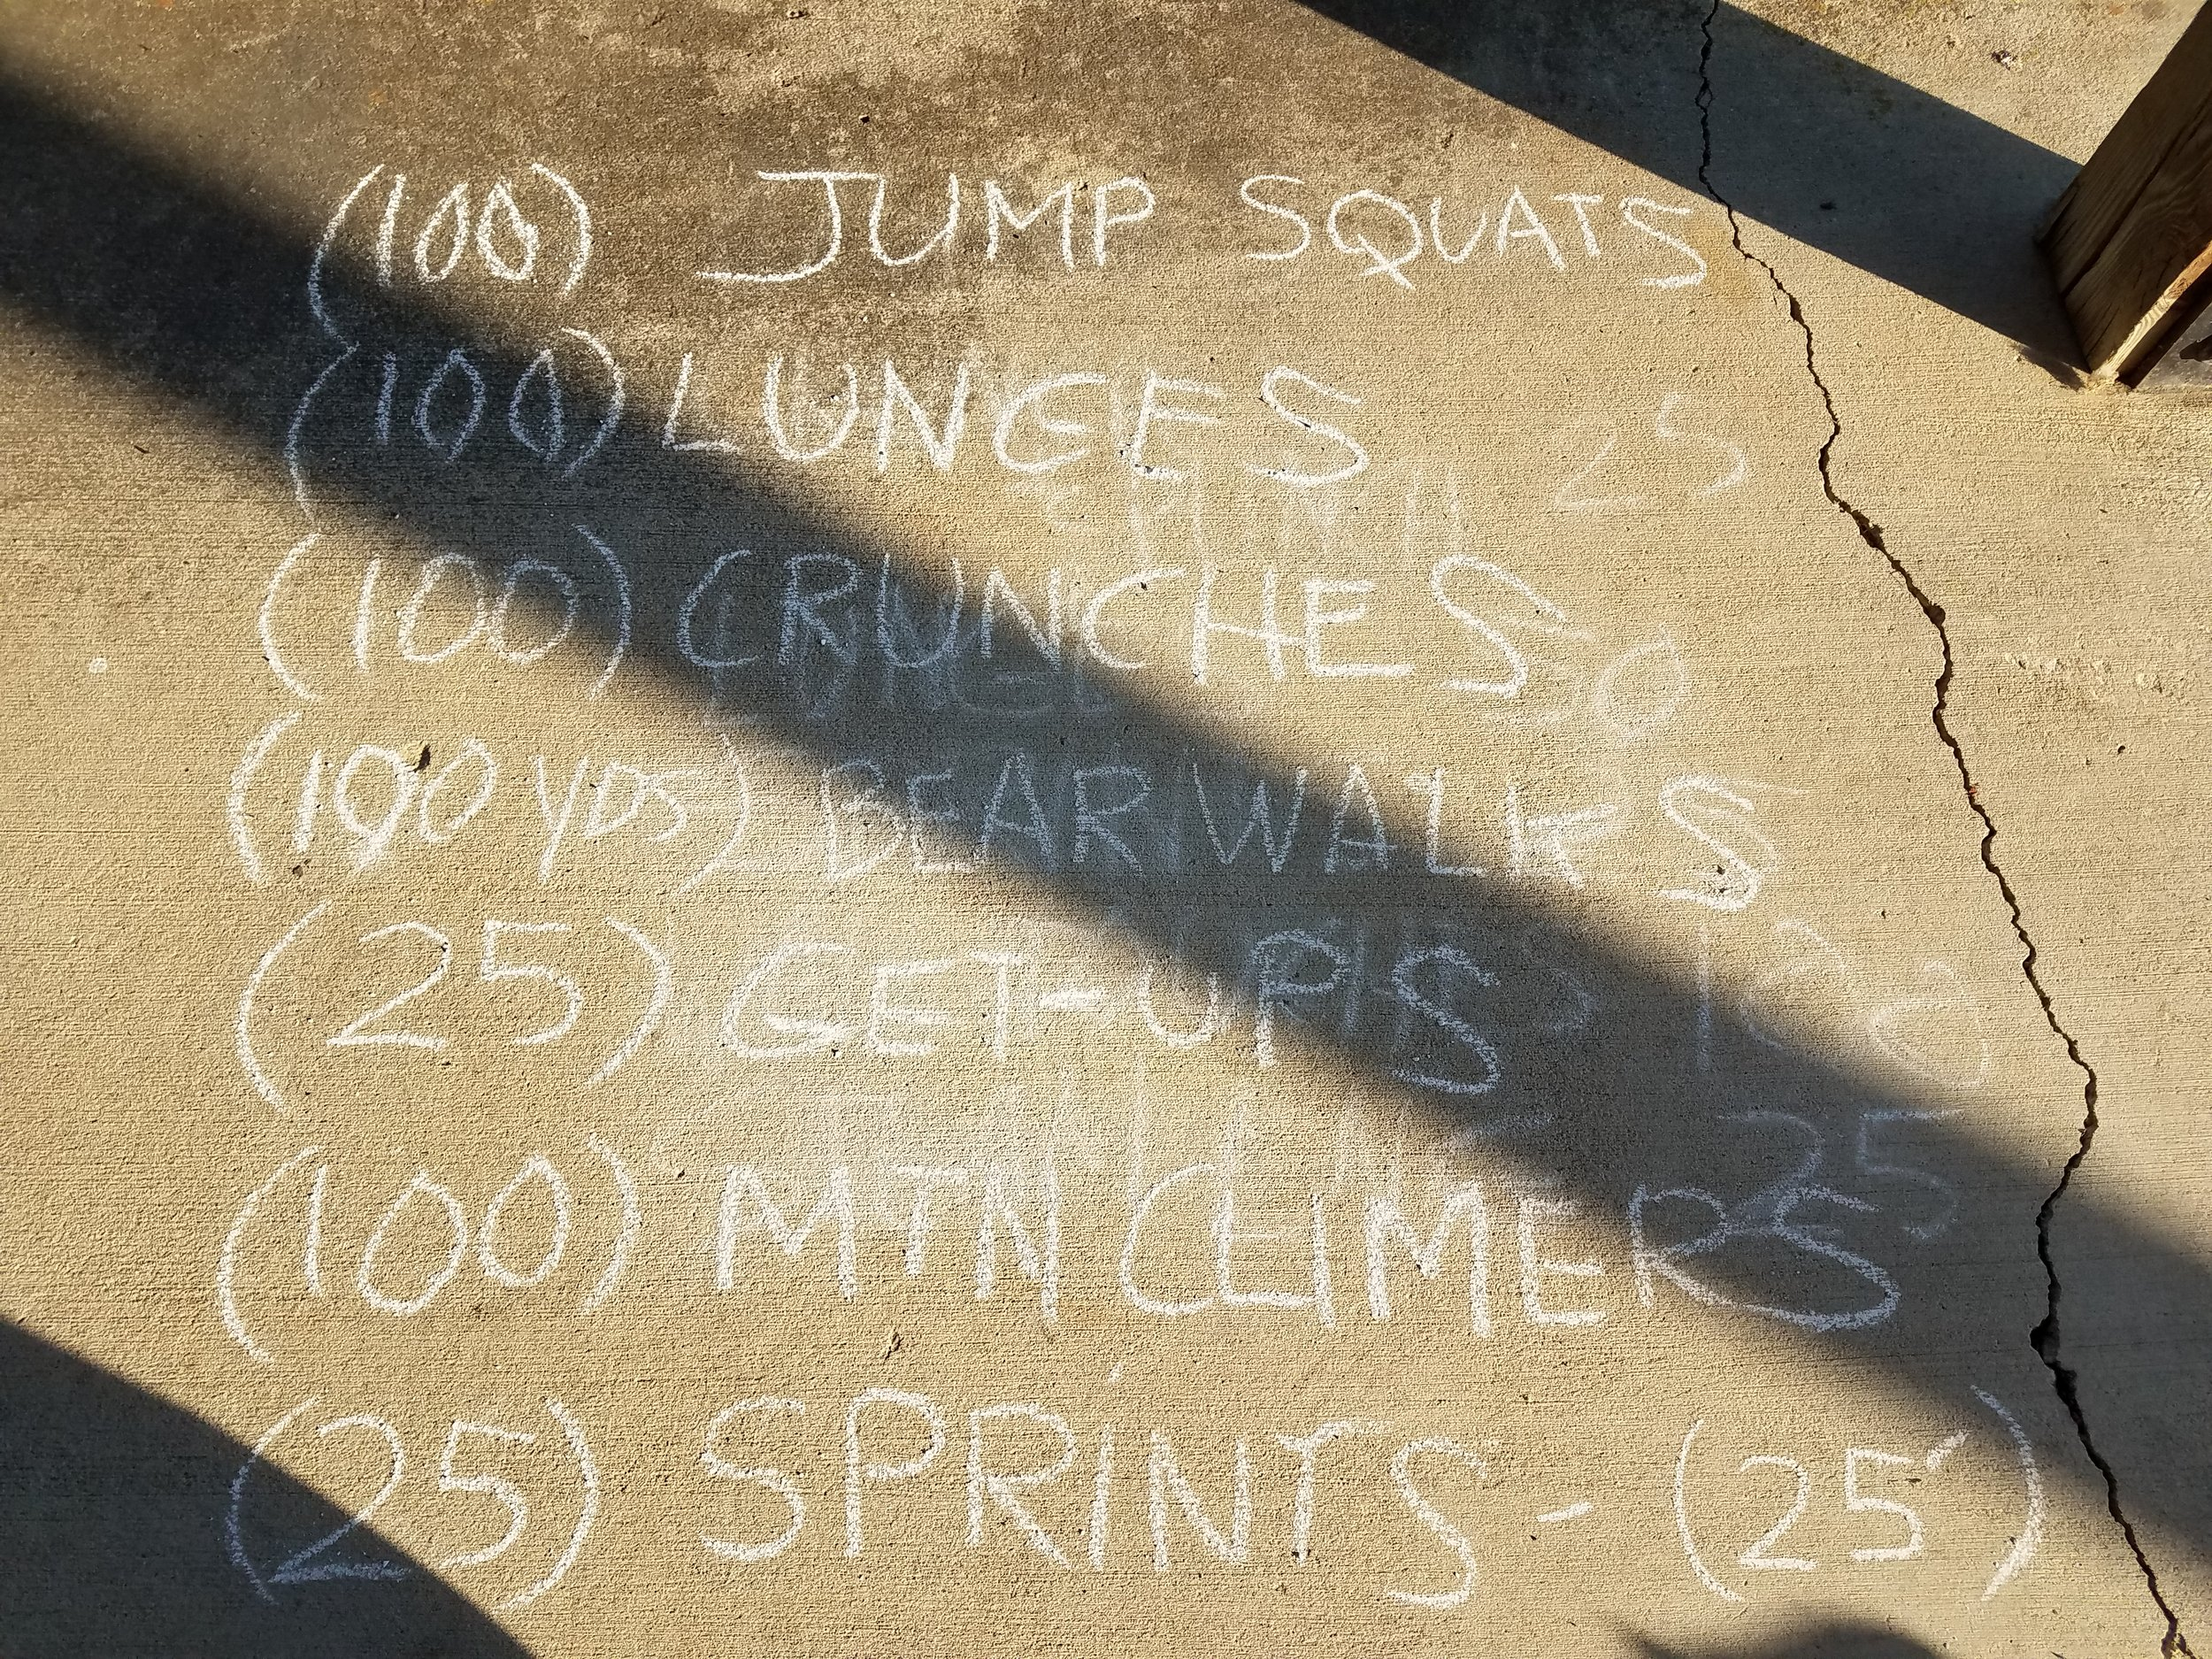 This month's focuses are Basic Self-Defense and The Book.  Our new constitutional:   Jump Squats (100) Lunges (100) Crunches (100) Bear Walk (100 yds) Get-ups (25) Mountain Cimbers (100) Sprints (50 x 12')